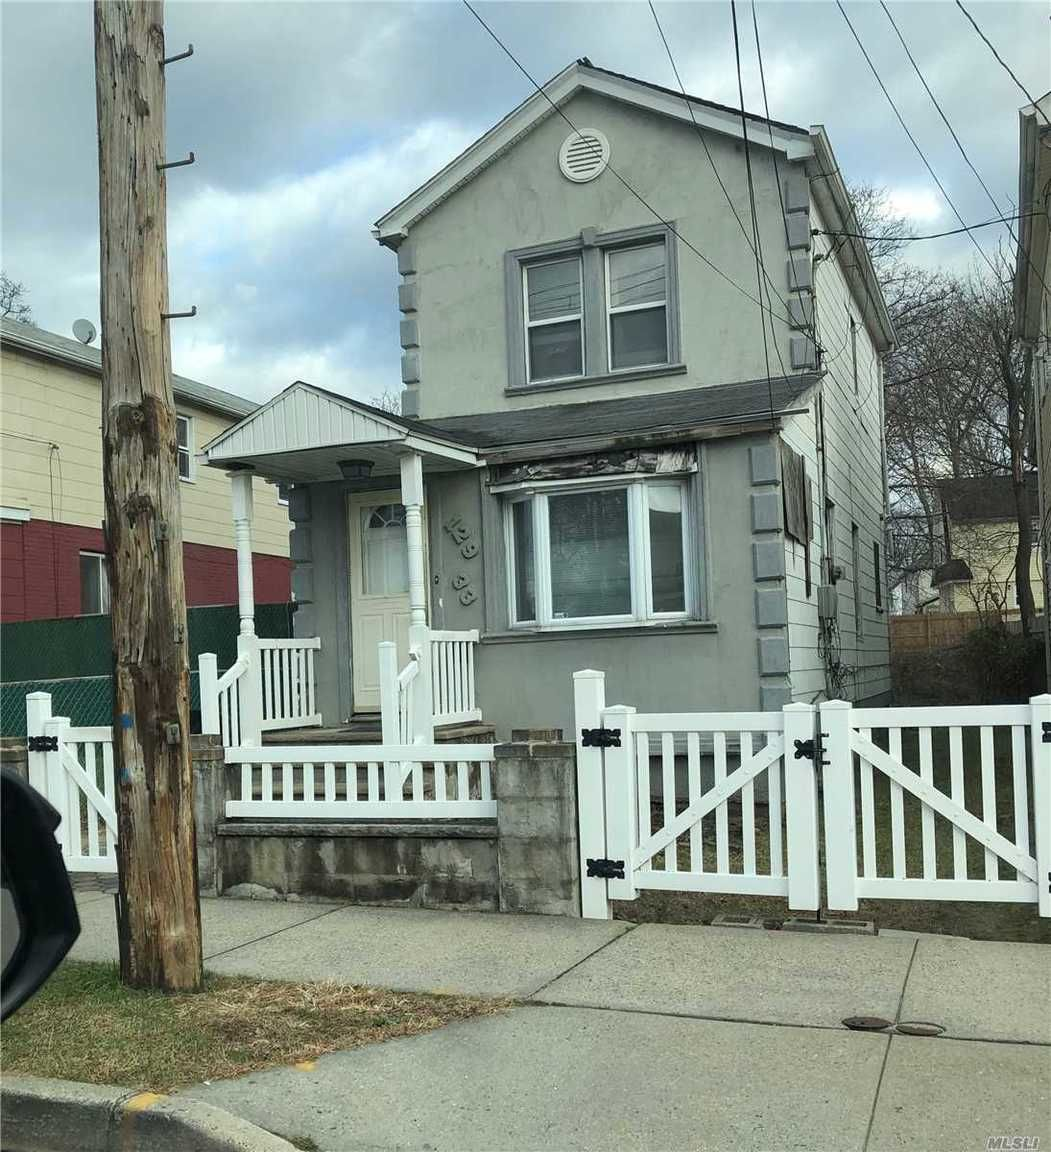 South Ozone Park, NY 11420 Homes For Sale